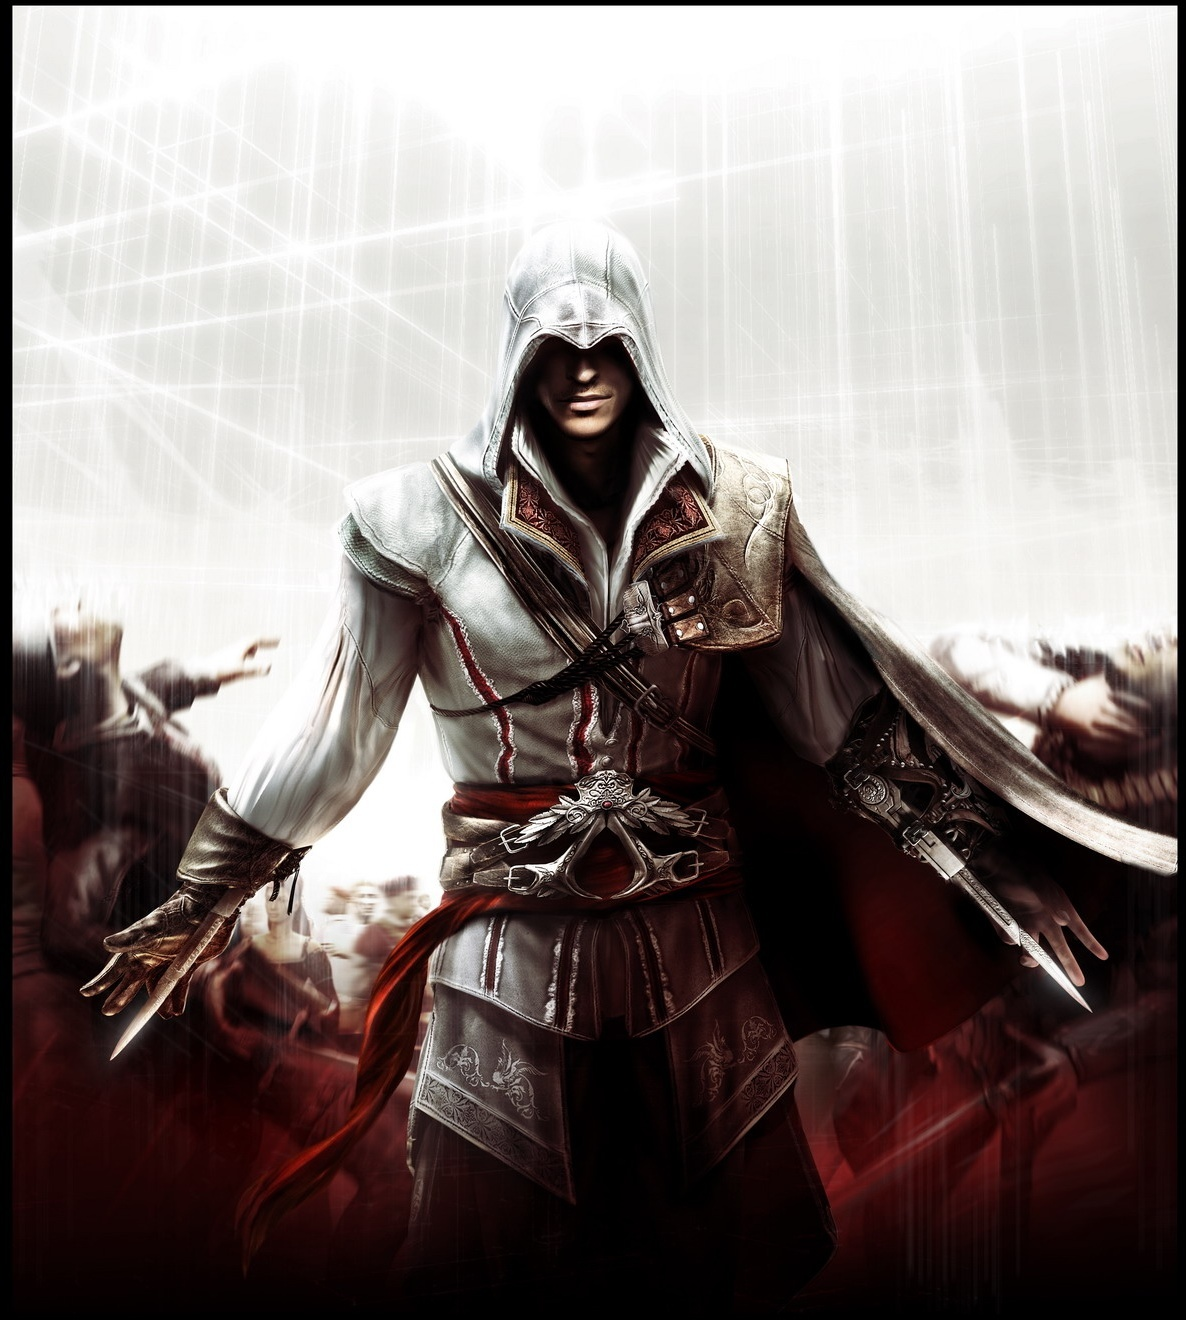 11039 download wallpaper Assassin's Creed, Games, Men screensavers and pictures for free